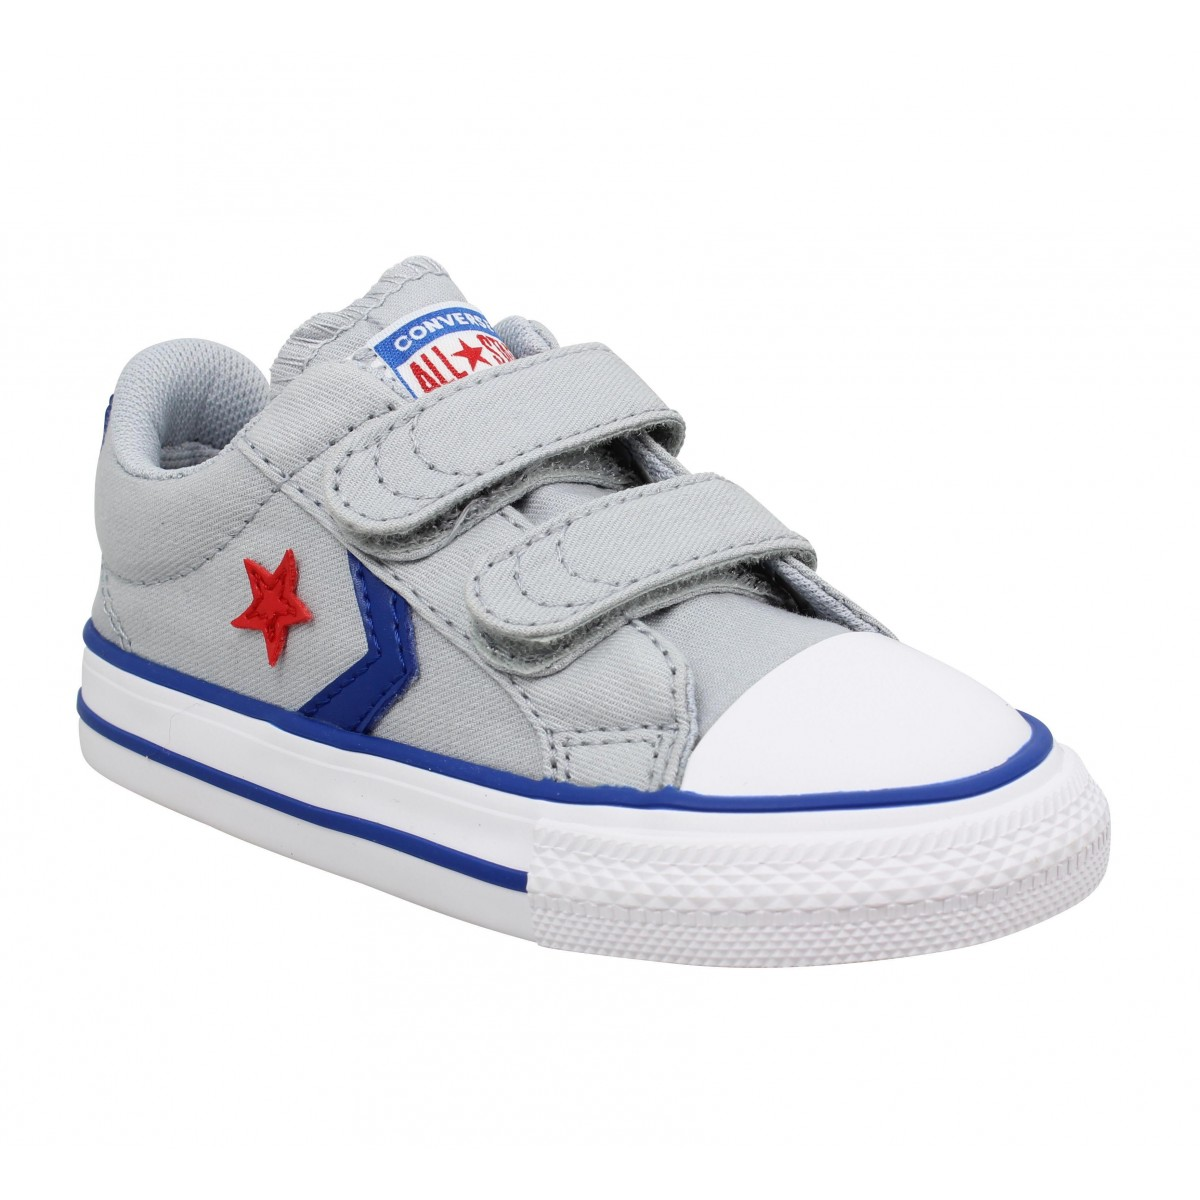 Baskets CONVERSE Star Player 2V OX toile Enfant Grey